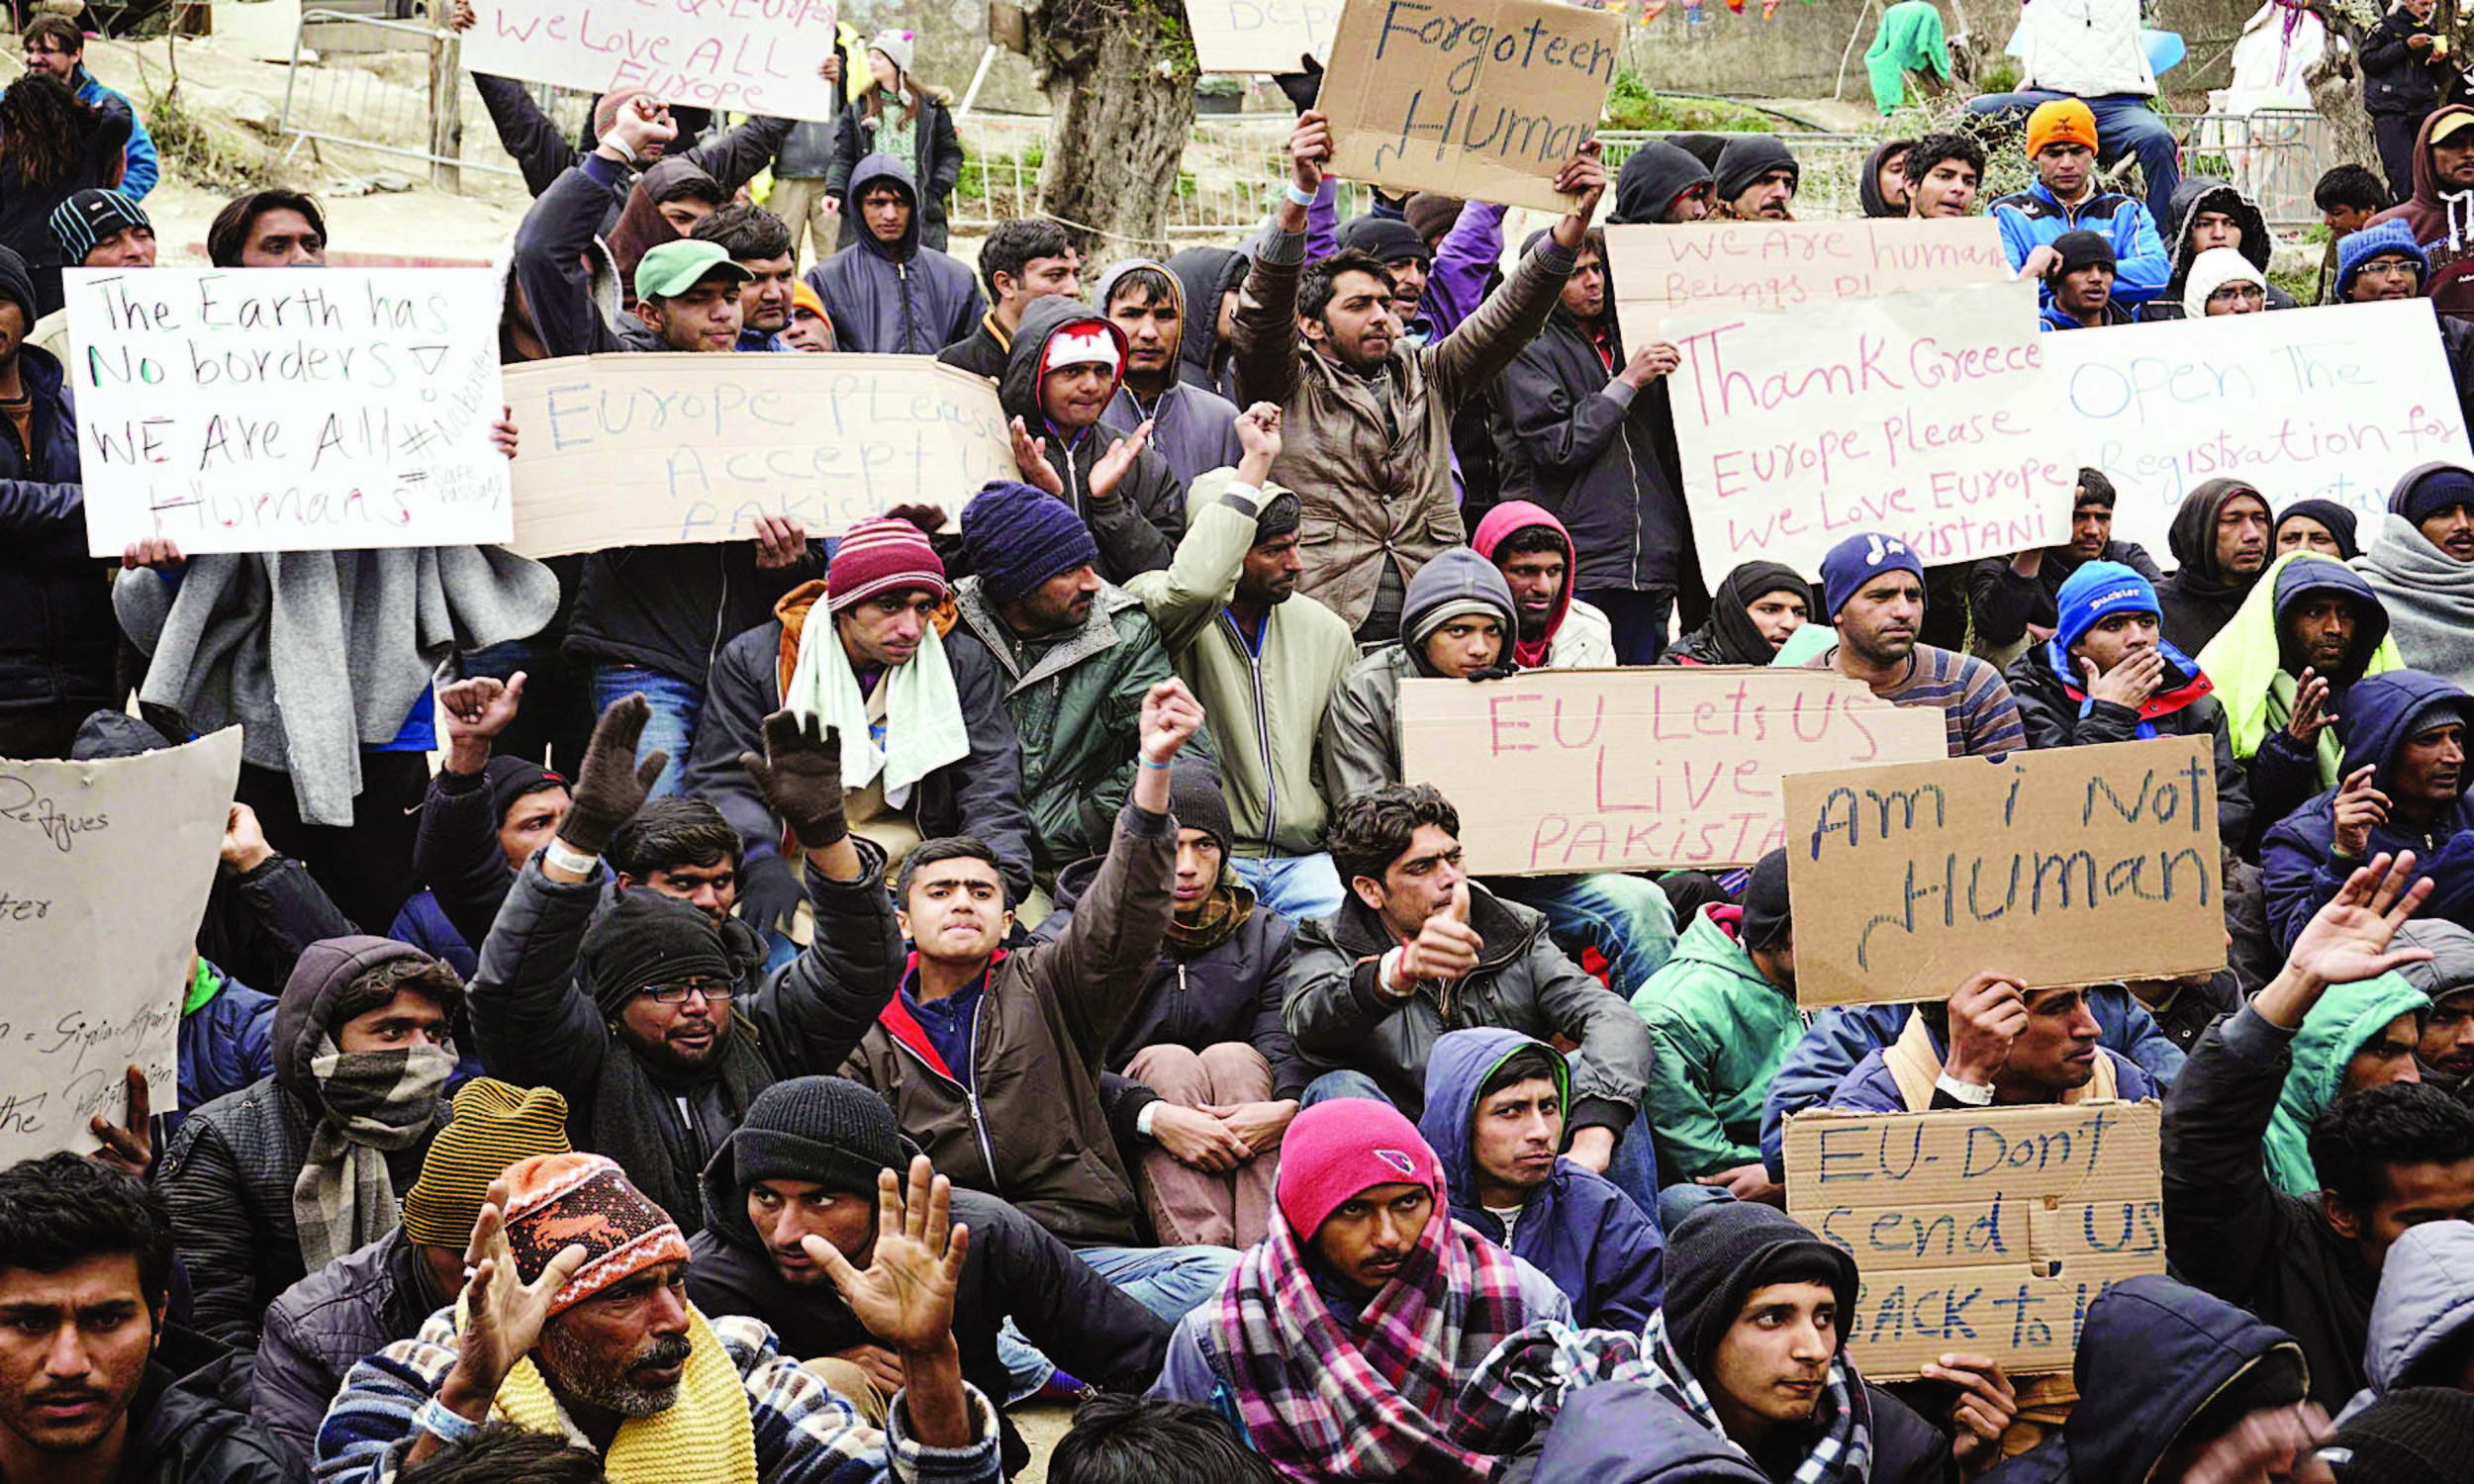 Pakistani migrants protest against deportation outside Moria detention centre at the Greek island of Lesbos in March 2016 | AFP